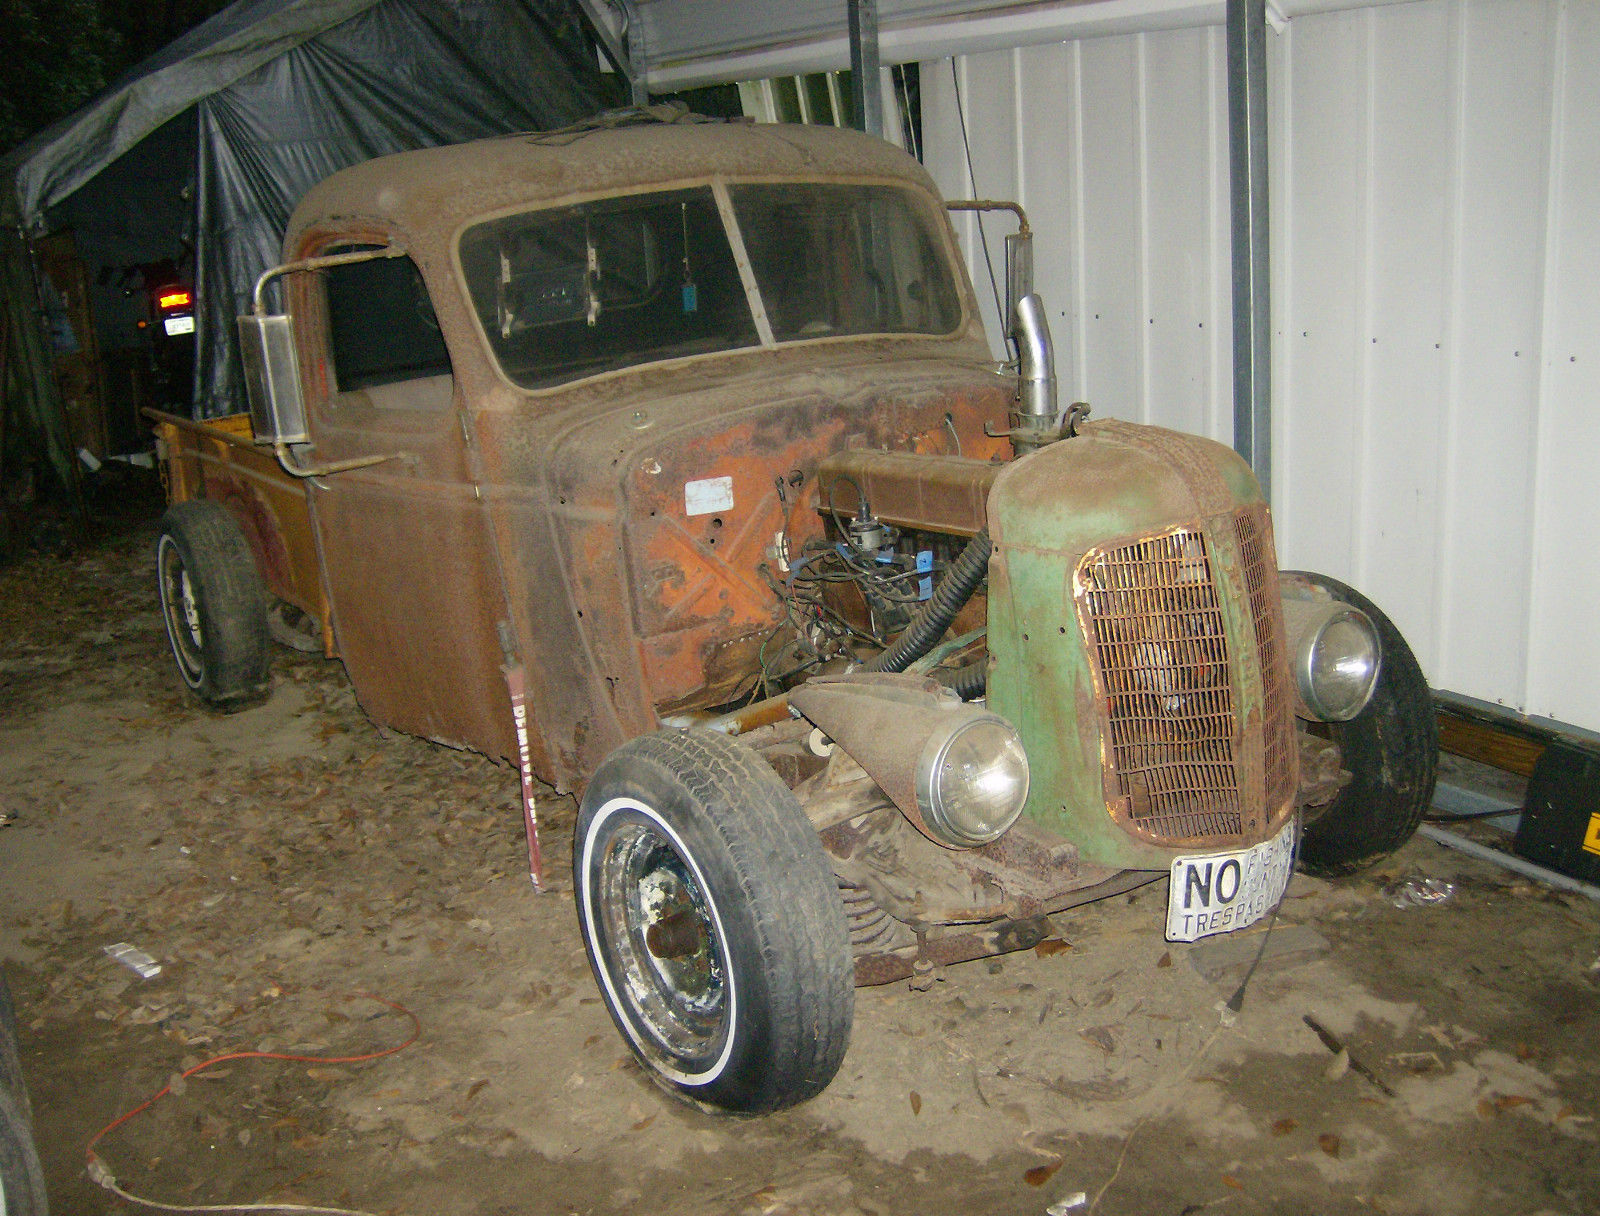 1941 1953 Chevrolet Rat Rod Hot Barn Find Pickup Project 40s Ford 3 4 Ton Truck 50s Patina For Sale In Rincon Georgia United States